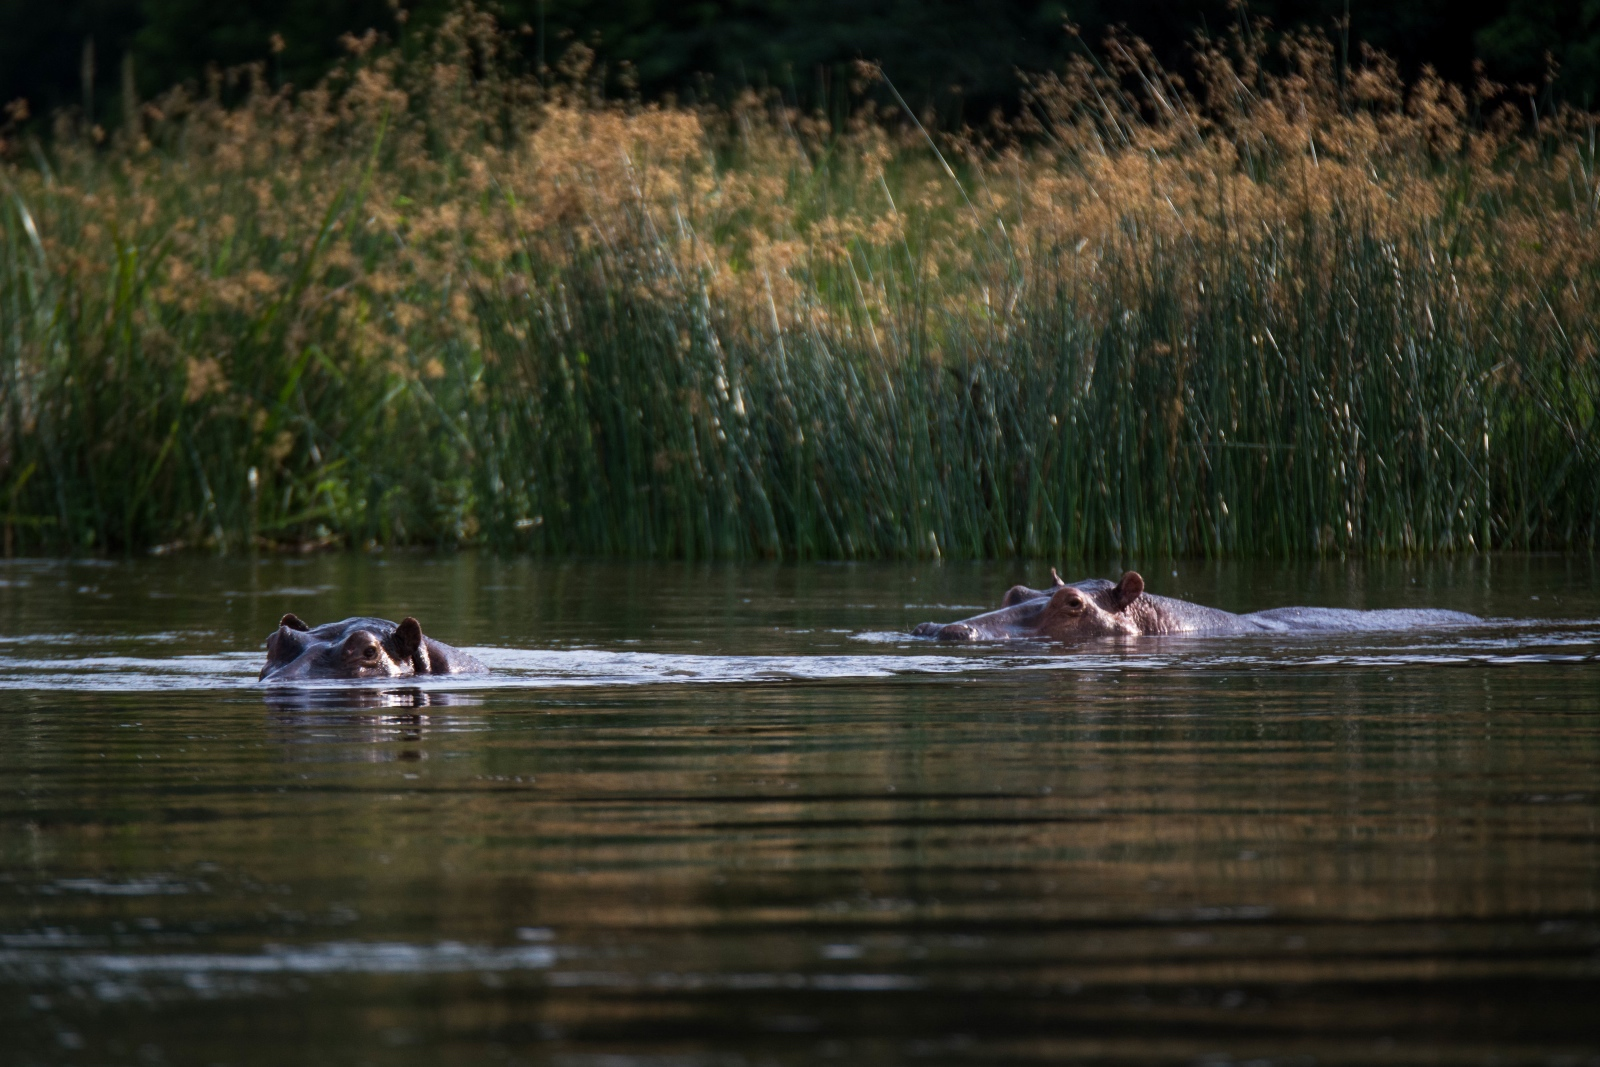 Hippos appear and disappear occasionally adding to the thrill of a Zambezi canoeing experience.